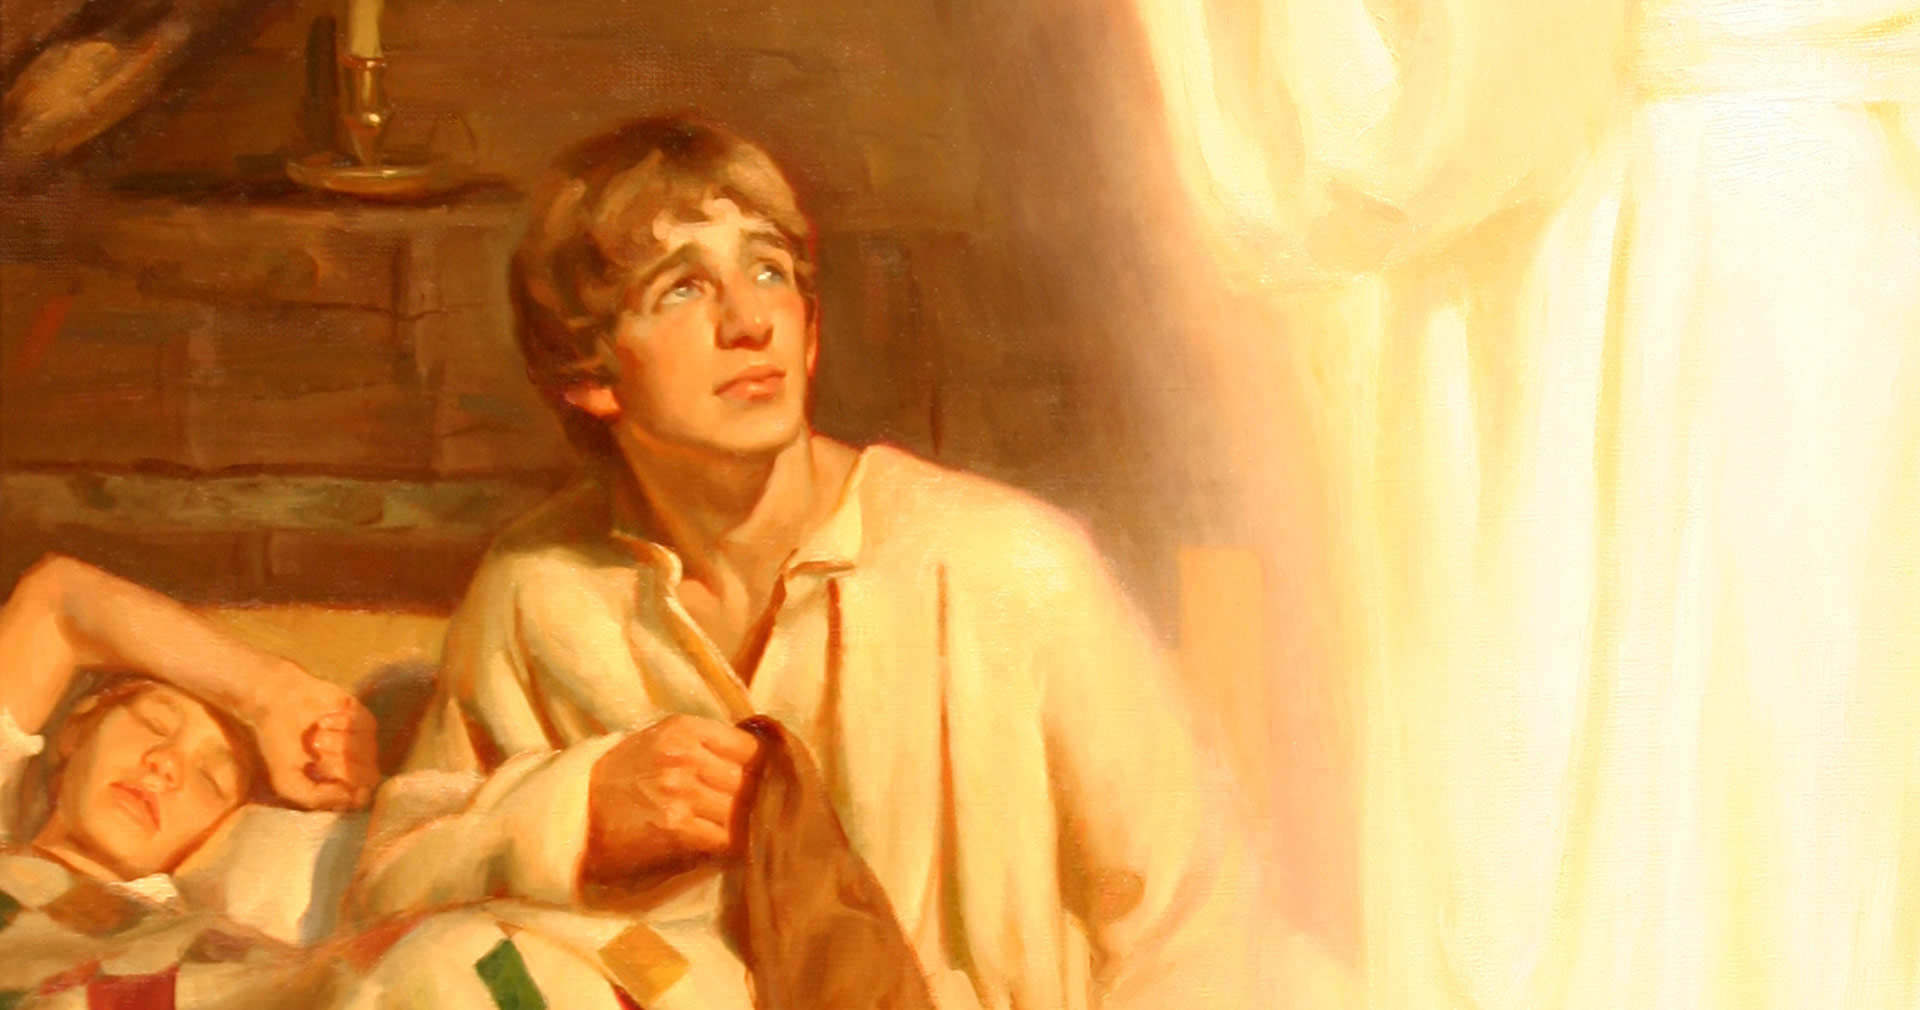 He Called Me by Name, by Michael Malm. Image via Church of Jesus Christ.